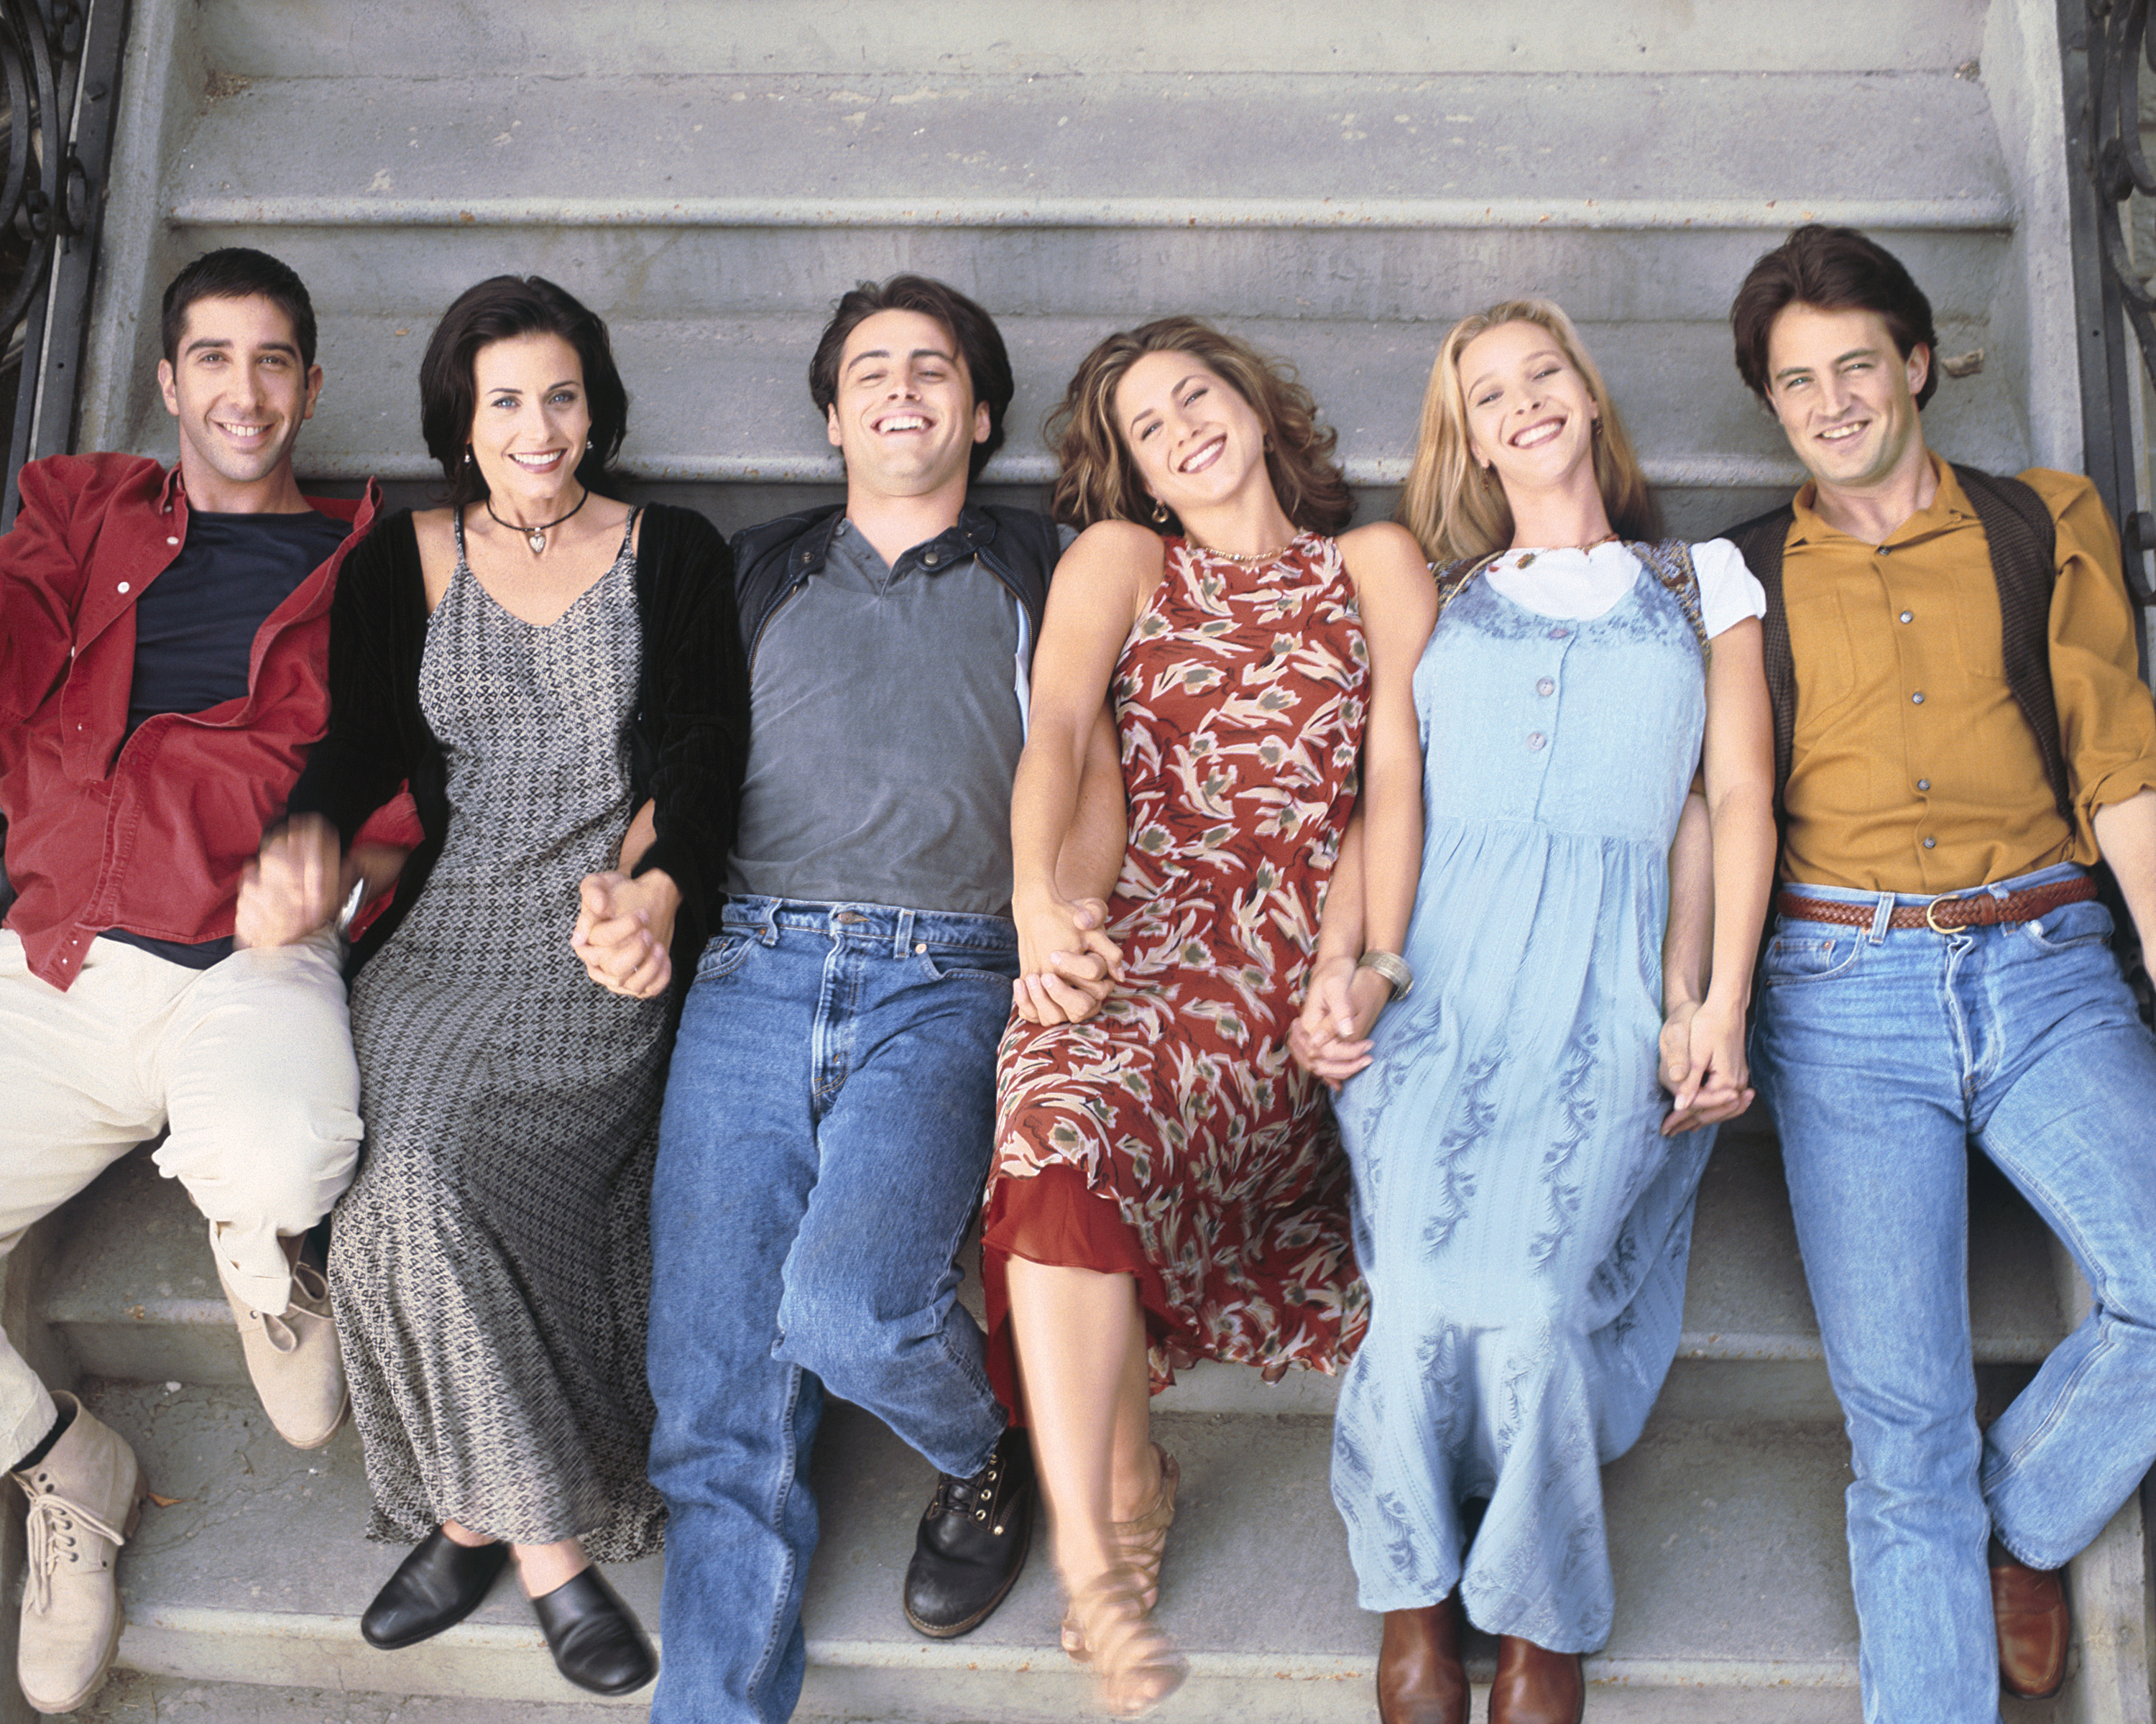 'Friends' stars commemorate show's 25th anniversary with Instagram posts